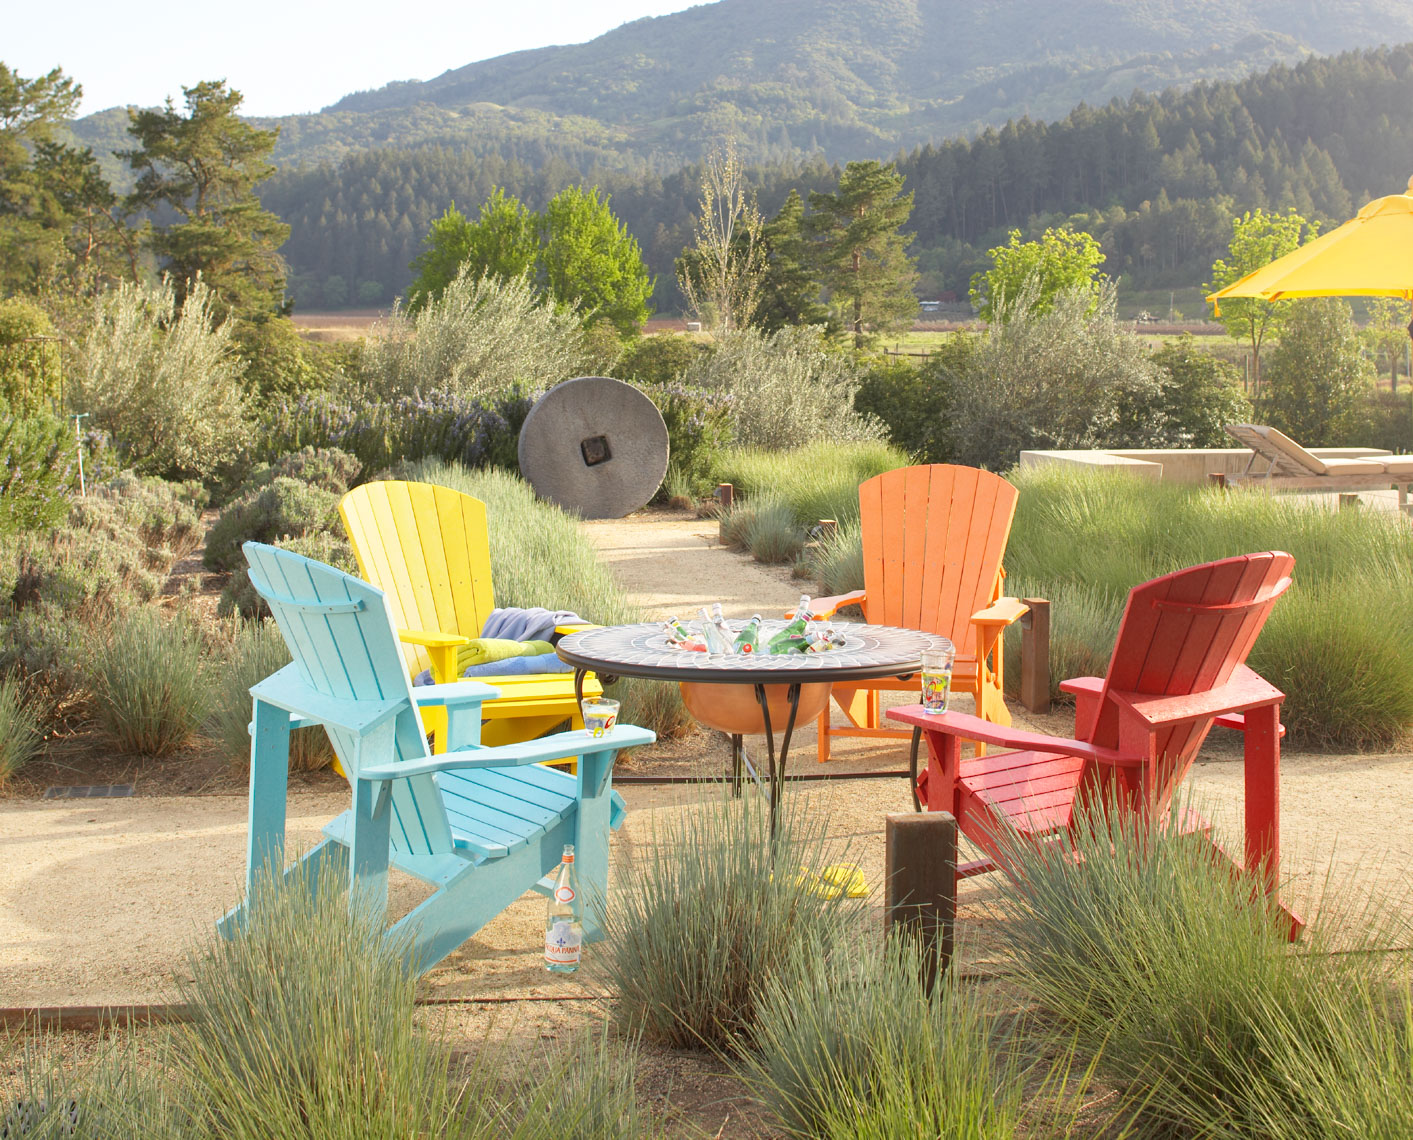 4 colorful adirondack chairs in wine country landscape San Francisco architectural photographer